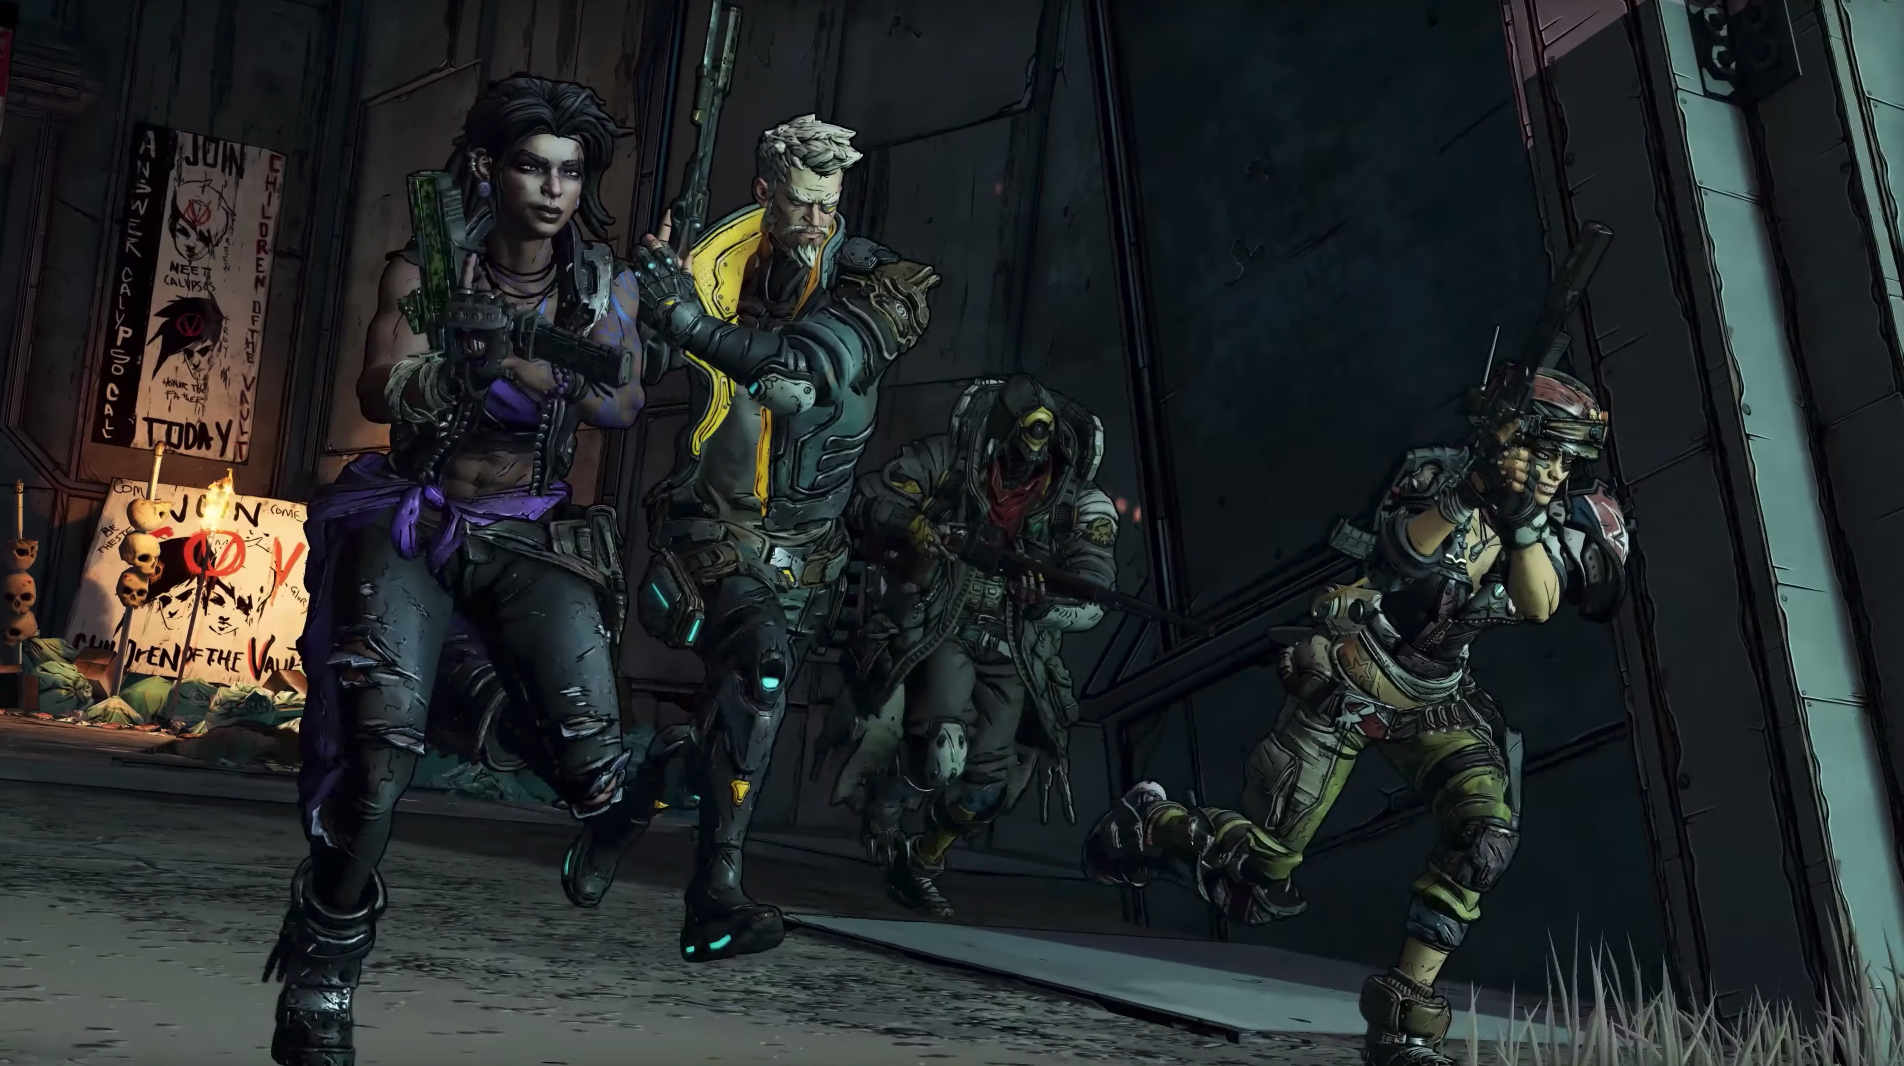 Borderlands 3's trailer is a disappointment - Polygon